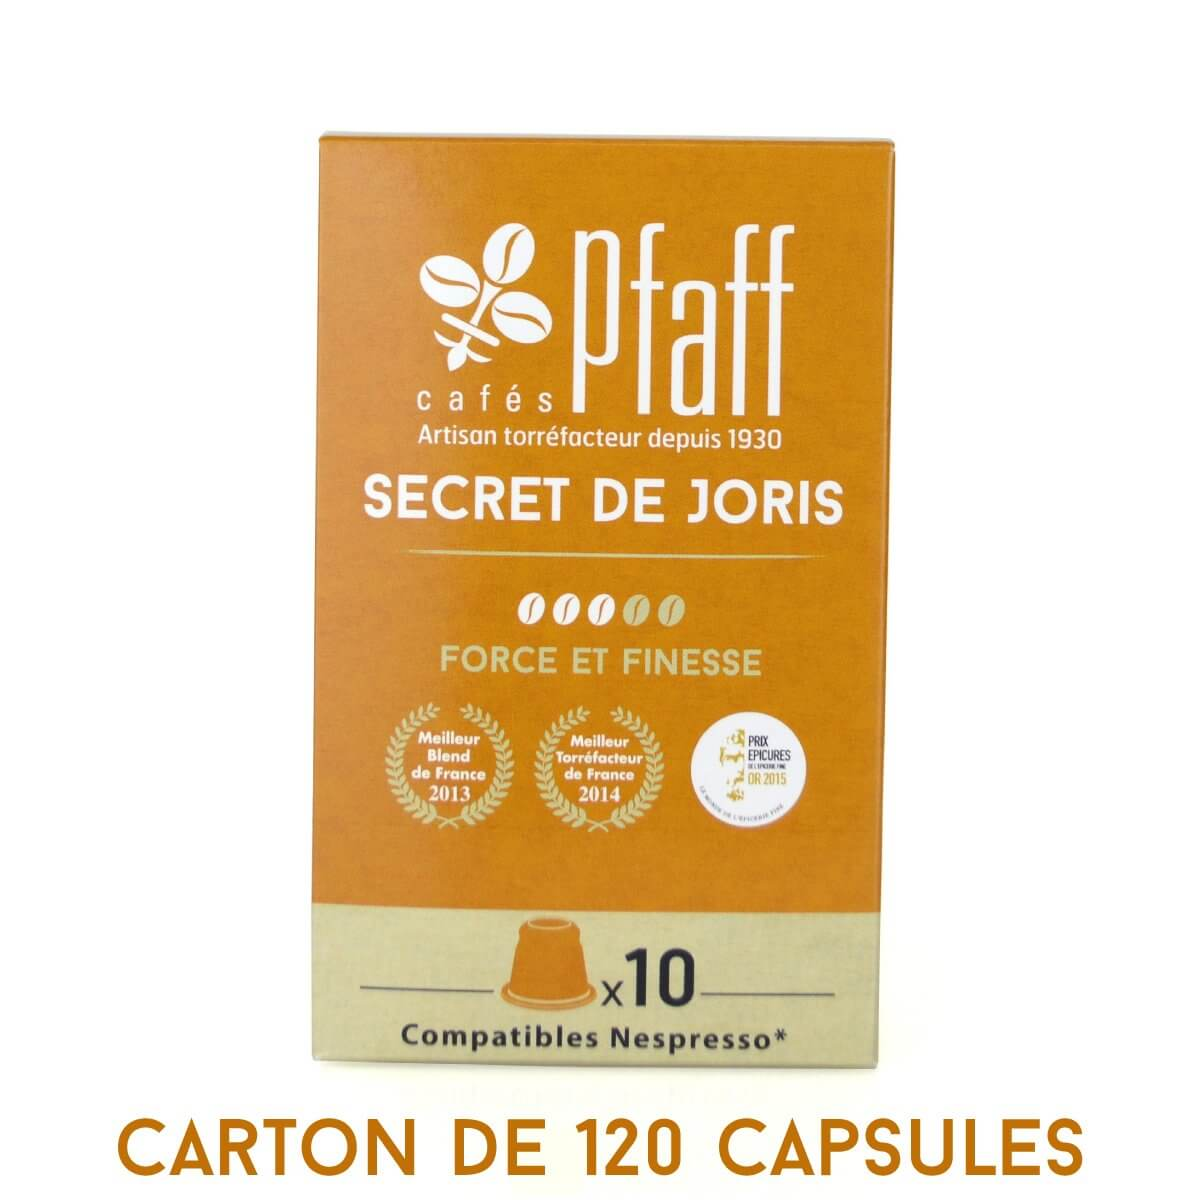 120 capsules SECRET DE JORIS compatibles Nespresso®*